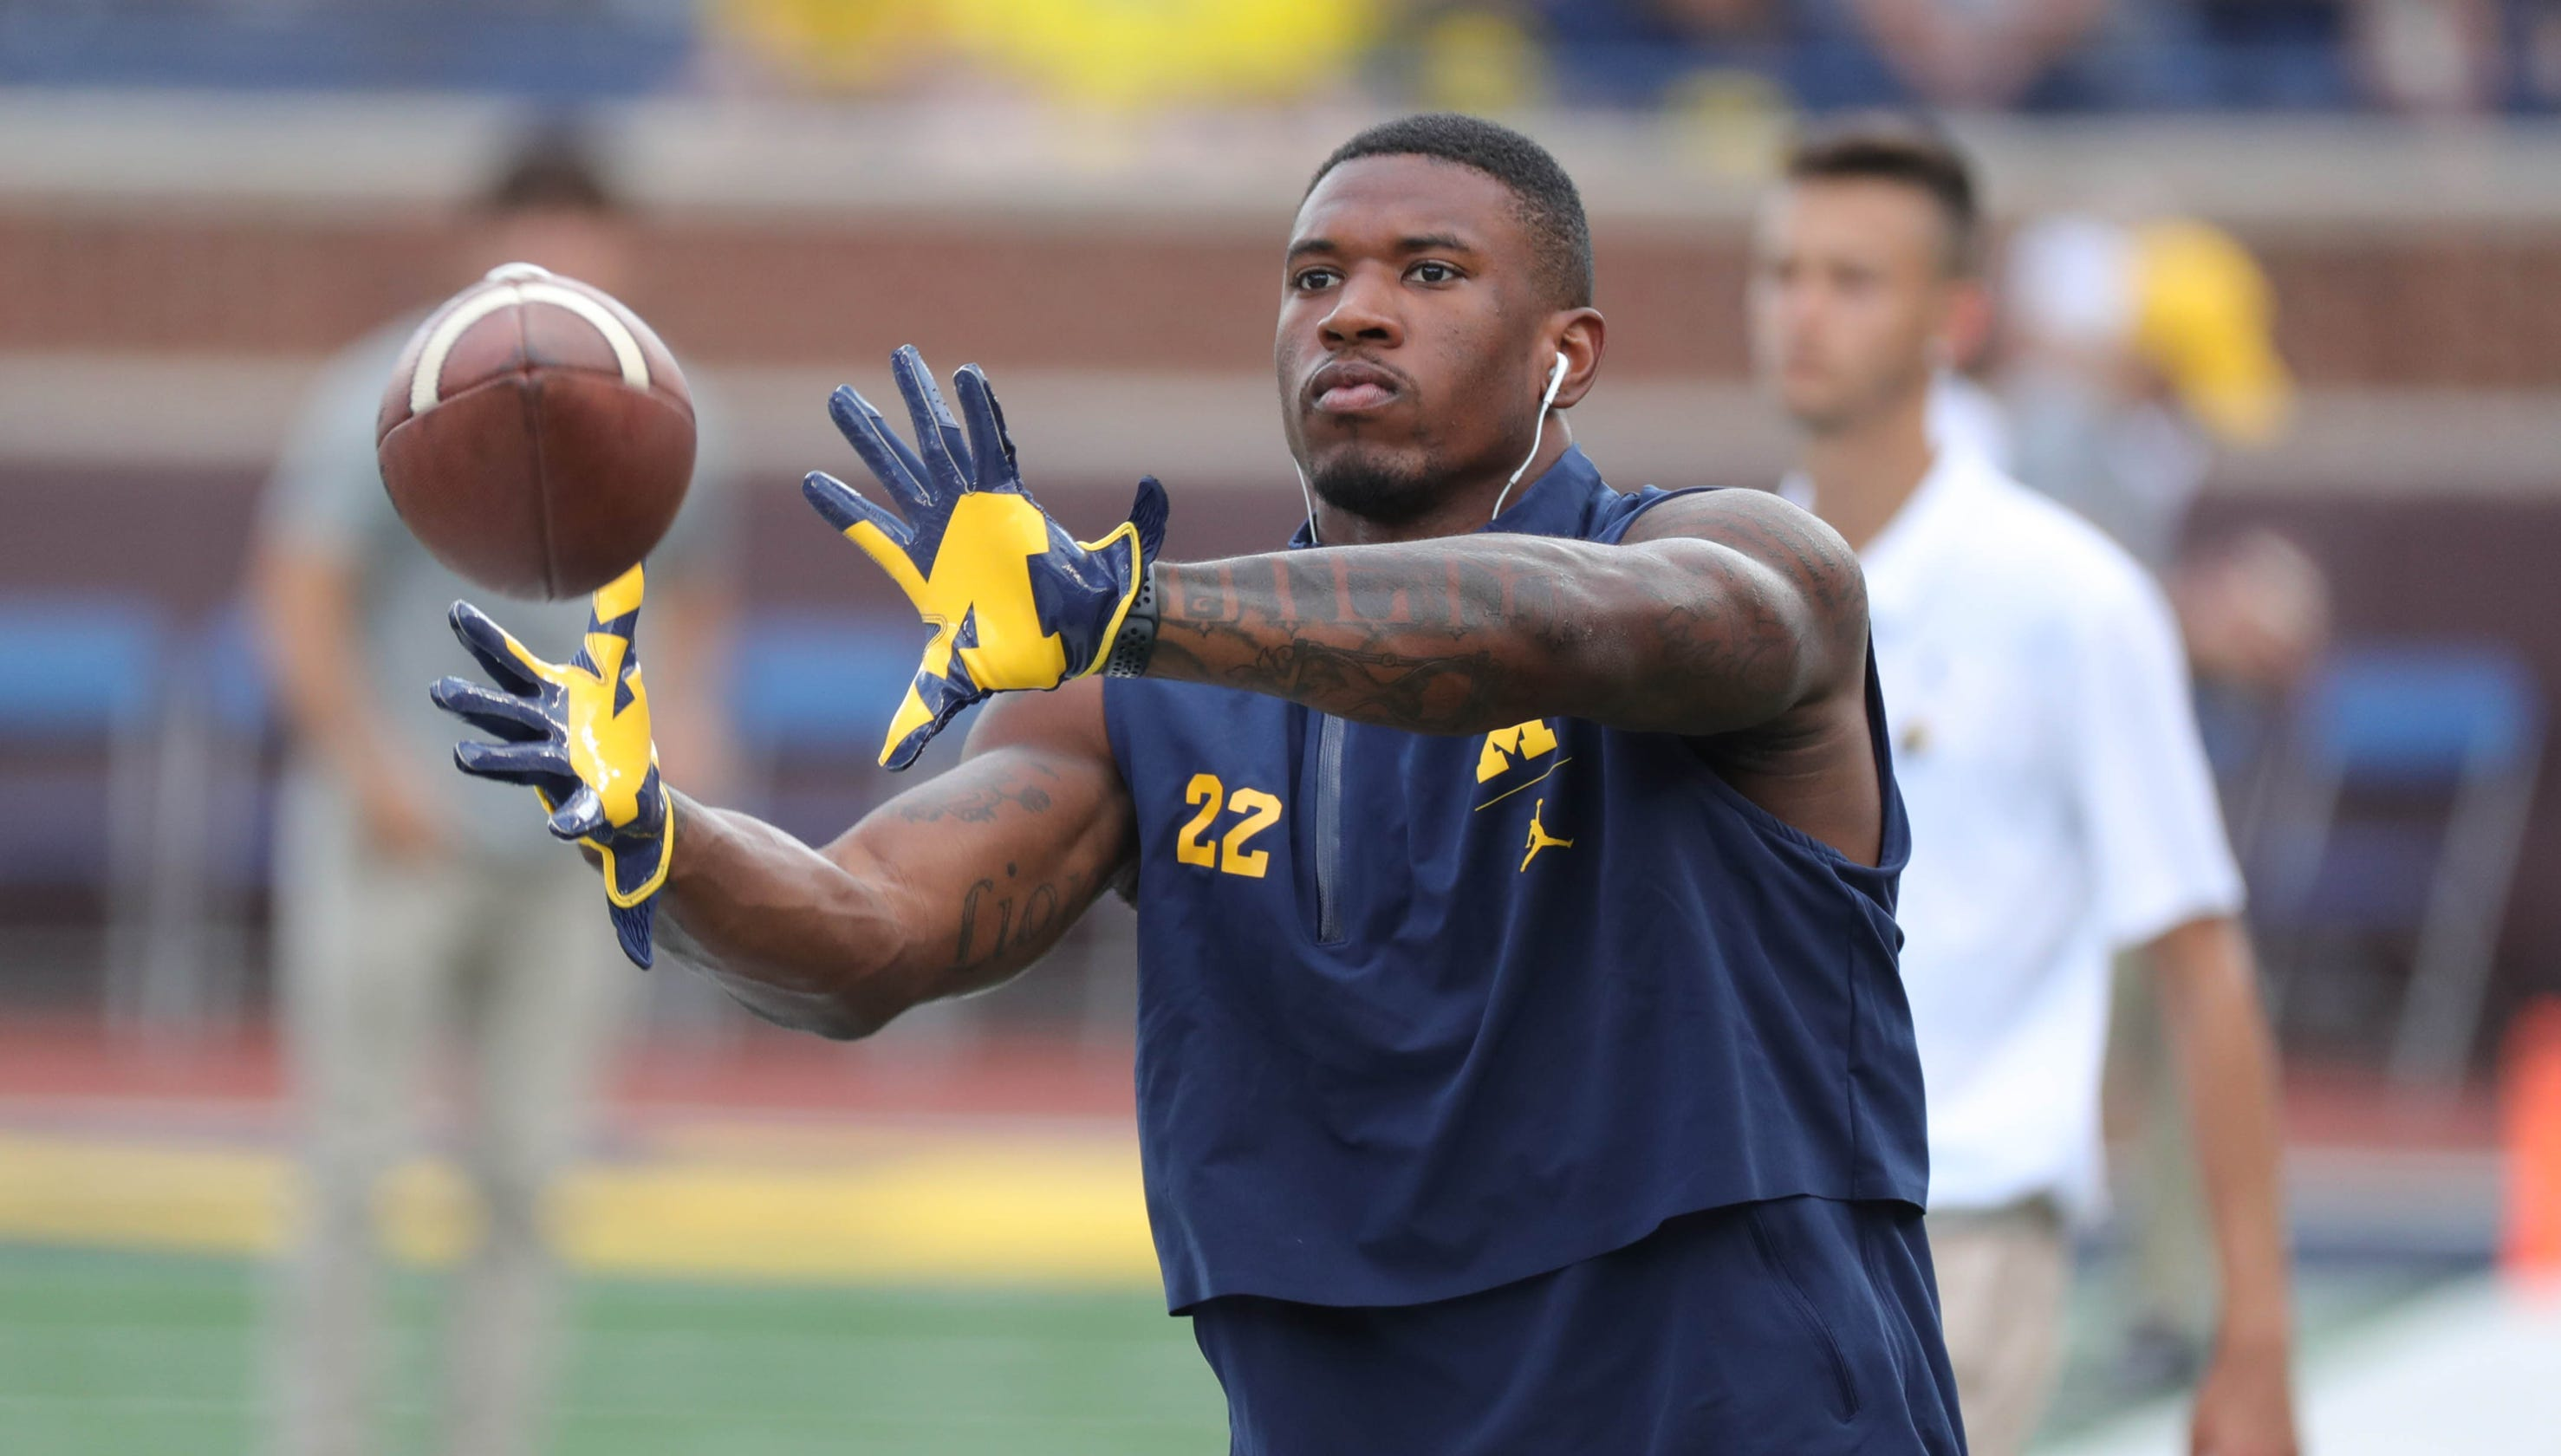 timeless design 06d18 a867c Michigan RBs Karan Higdon, Chris Evans both practice